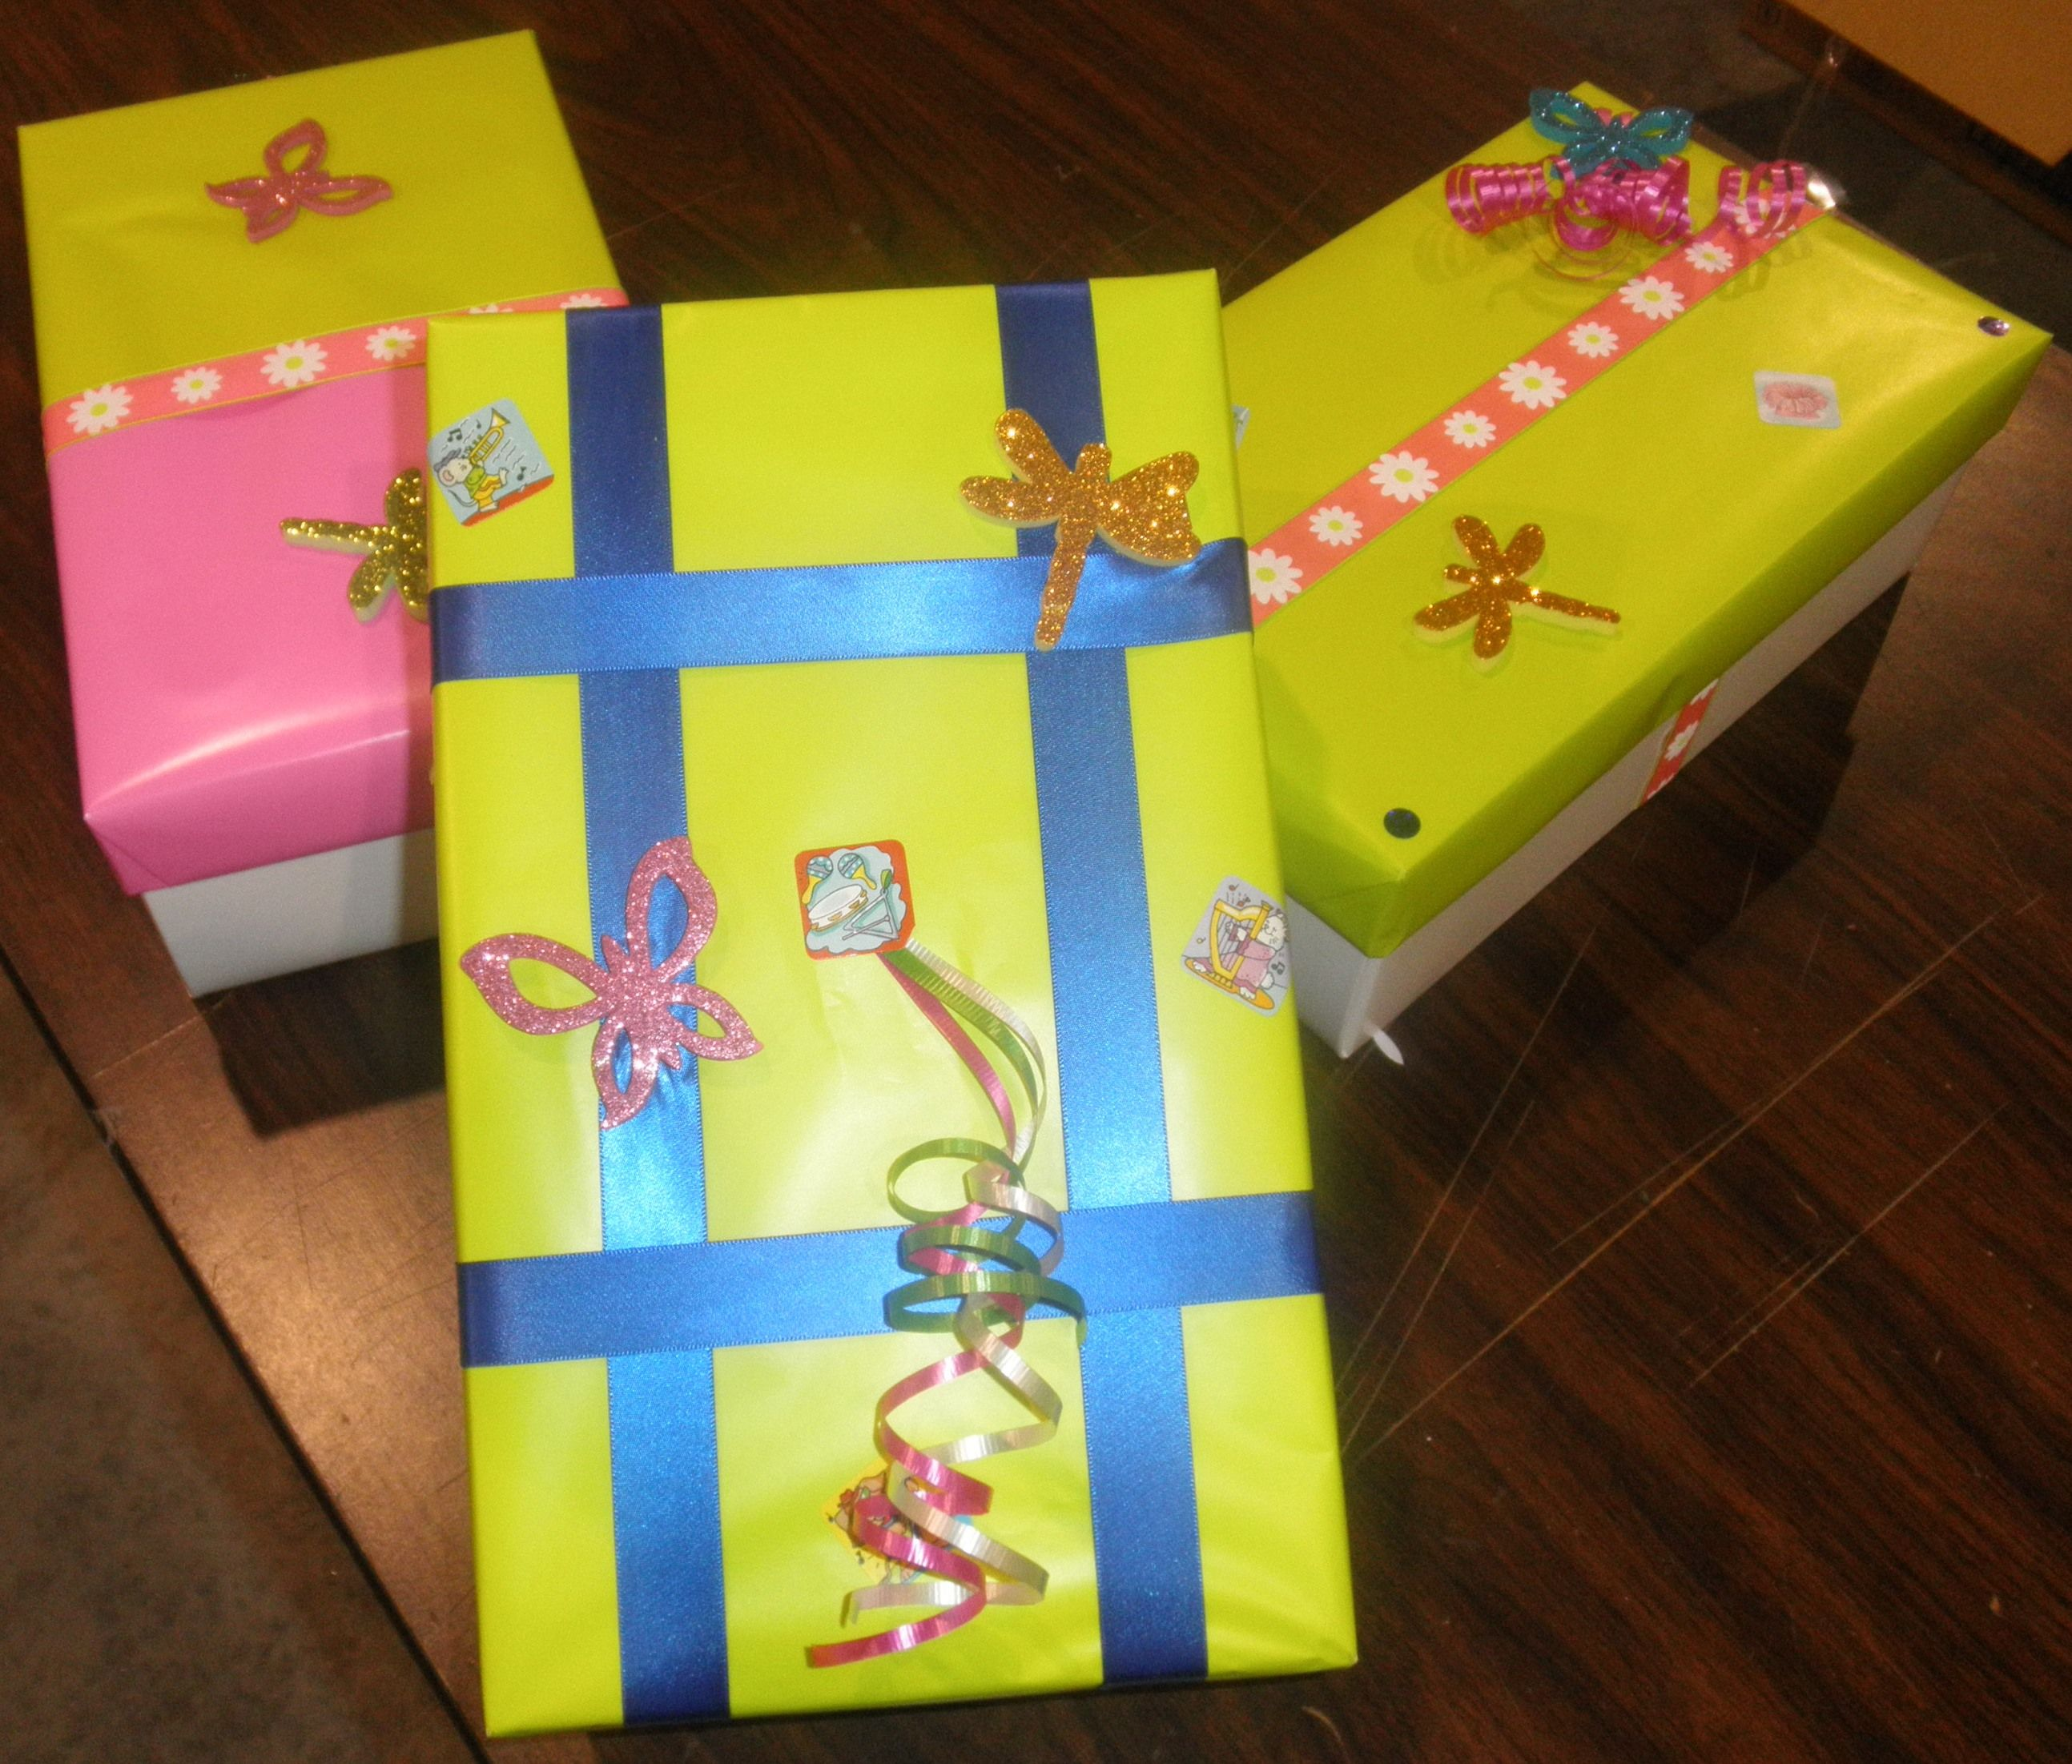 The United Way Shoebox Project gives you the opportunity